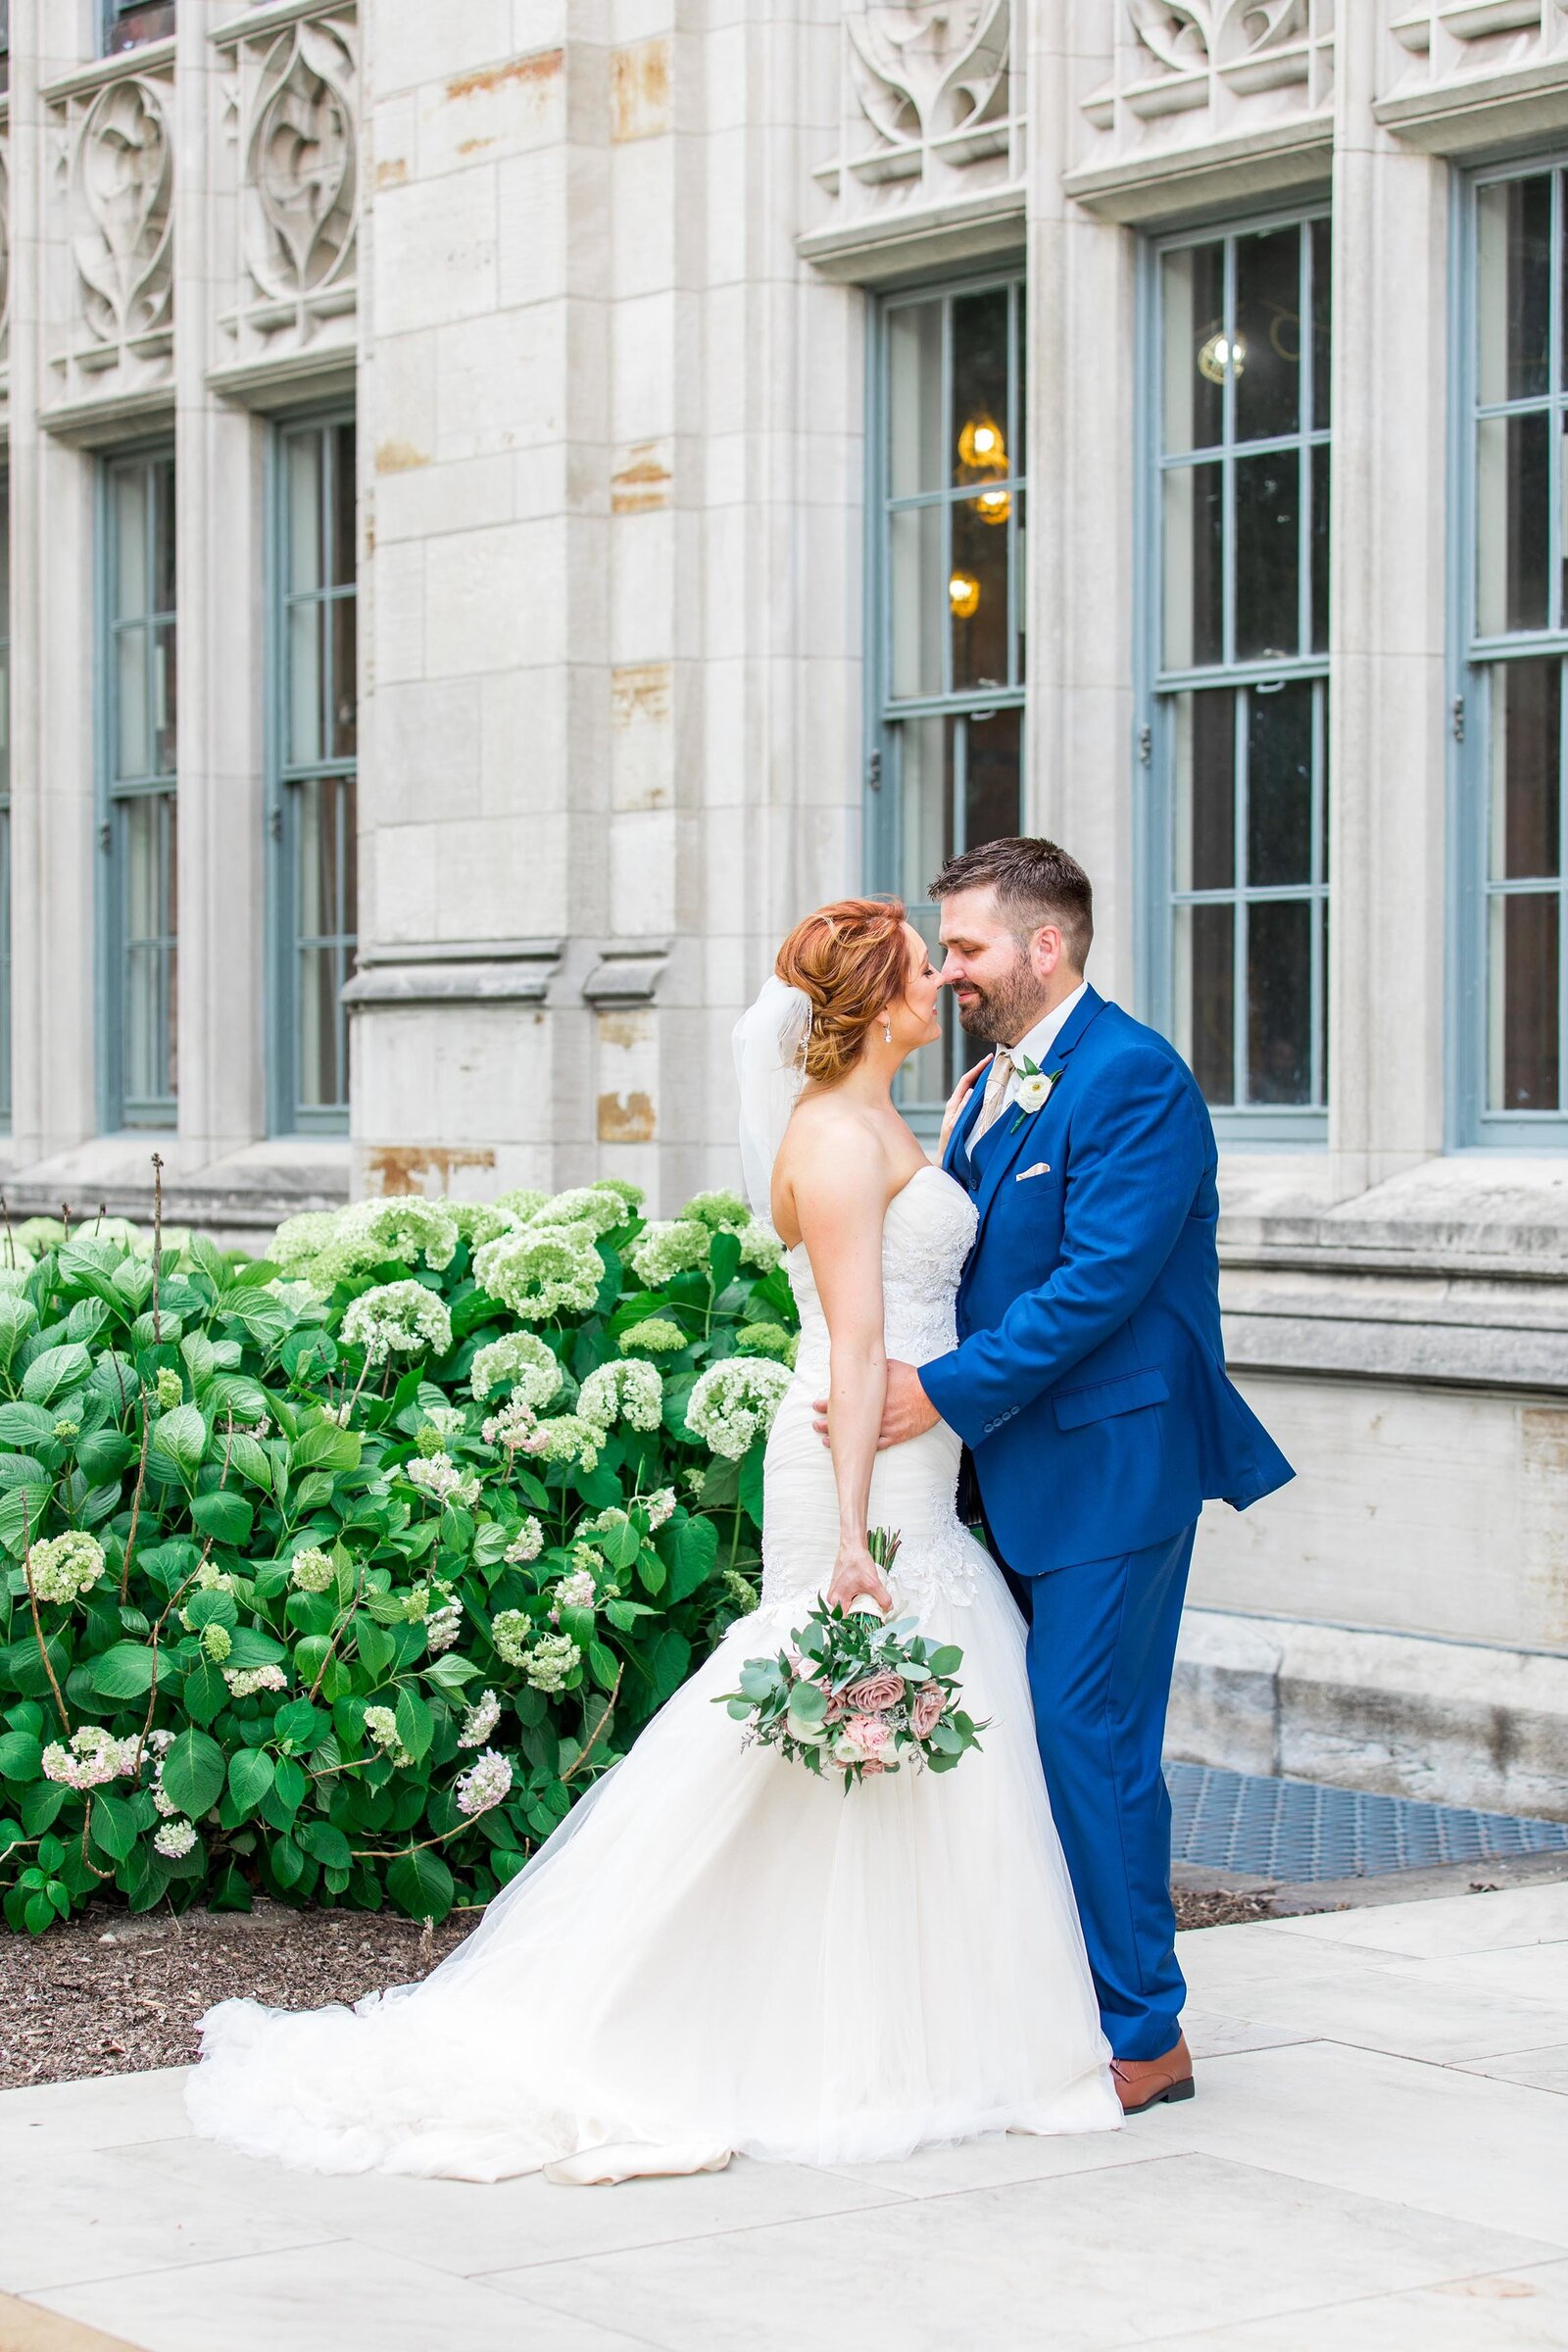 Hannah-Barlow-Photography-Tri-State-Wedding-Photographer_0578